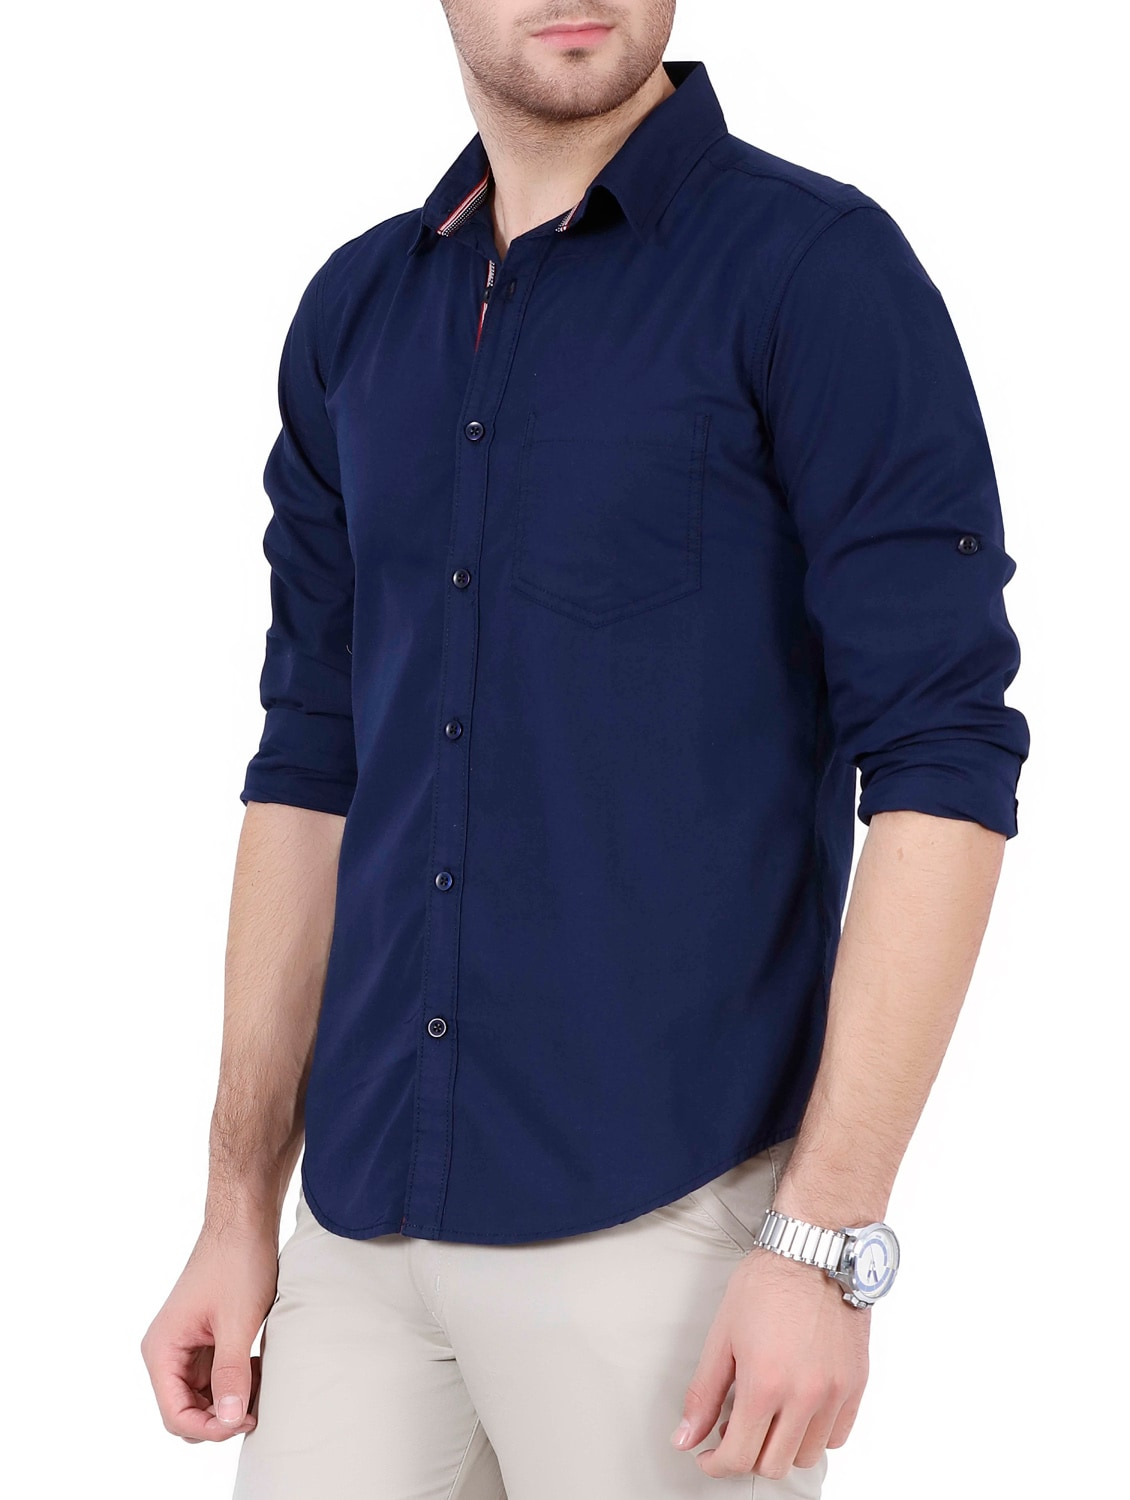 Online Shopping Designer Shirts In India Cotswold Hire